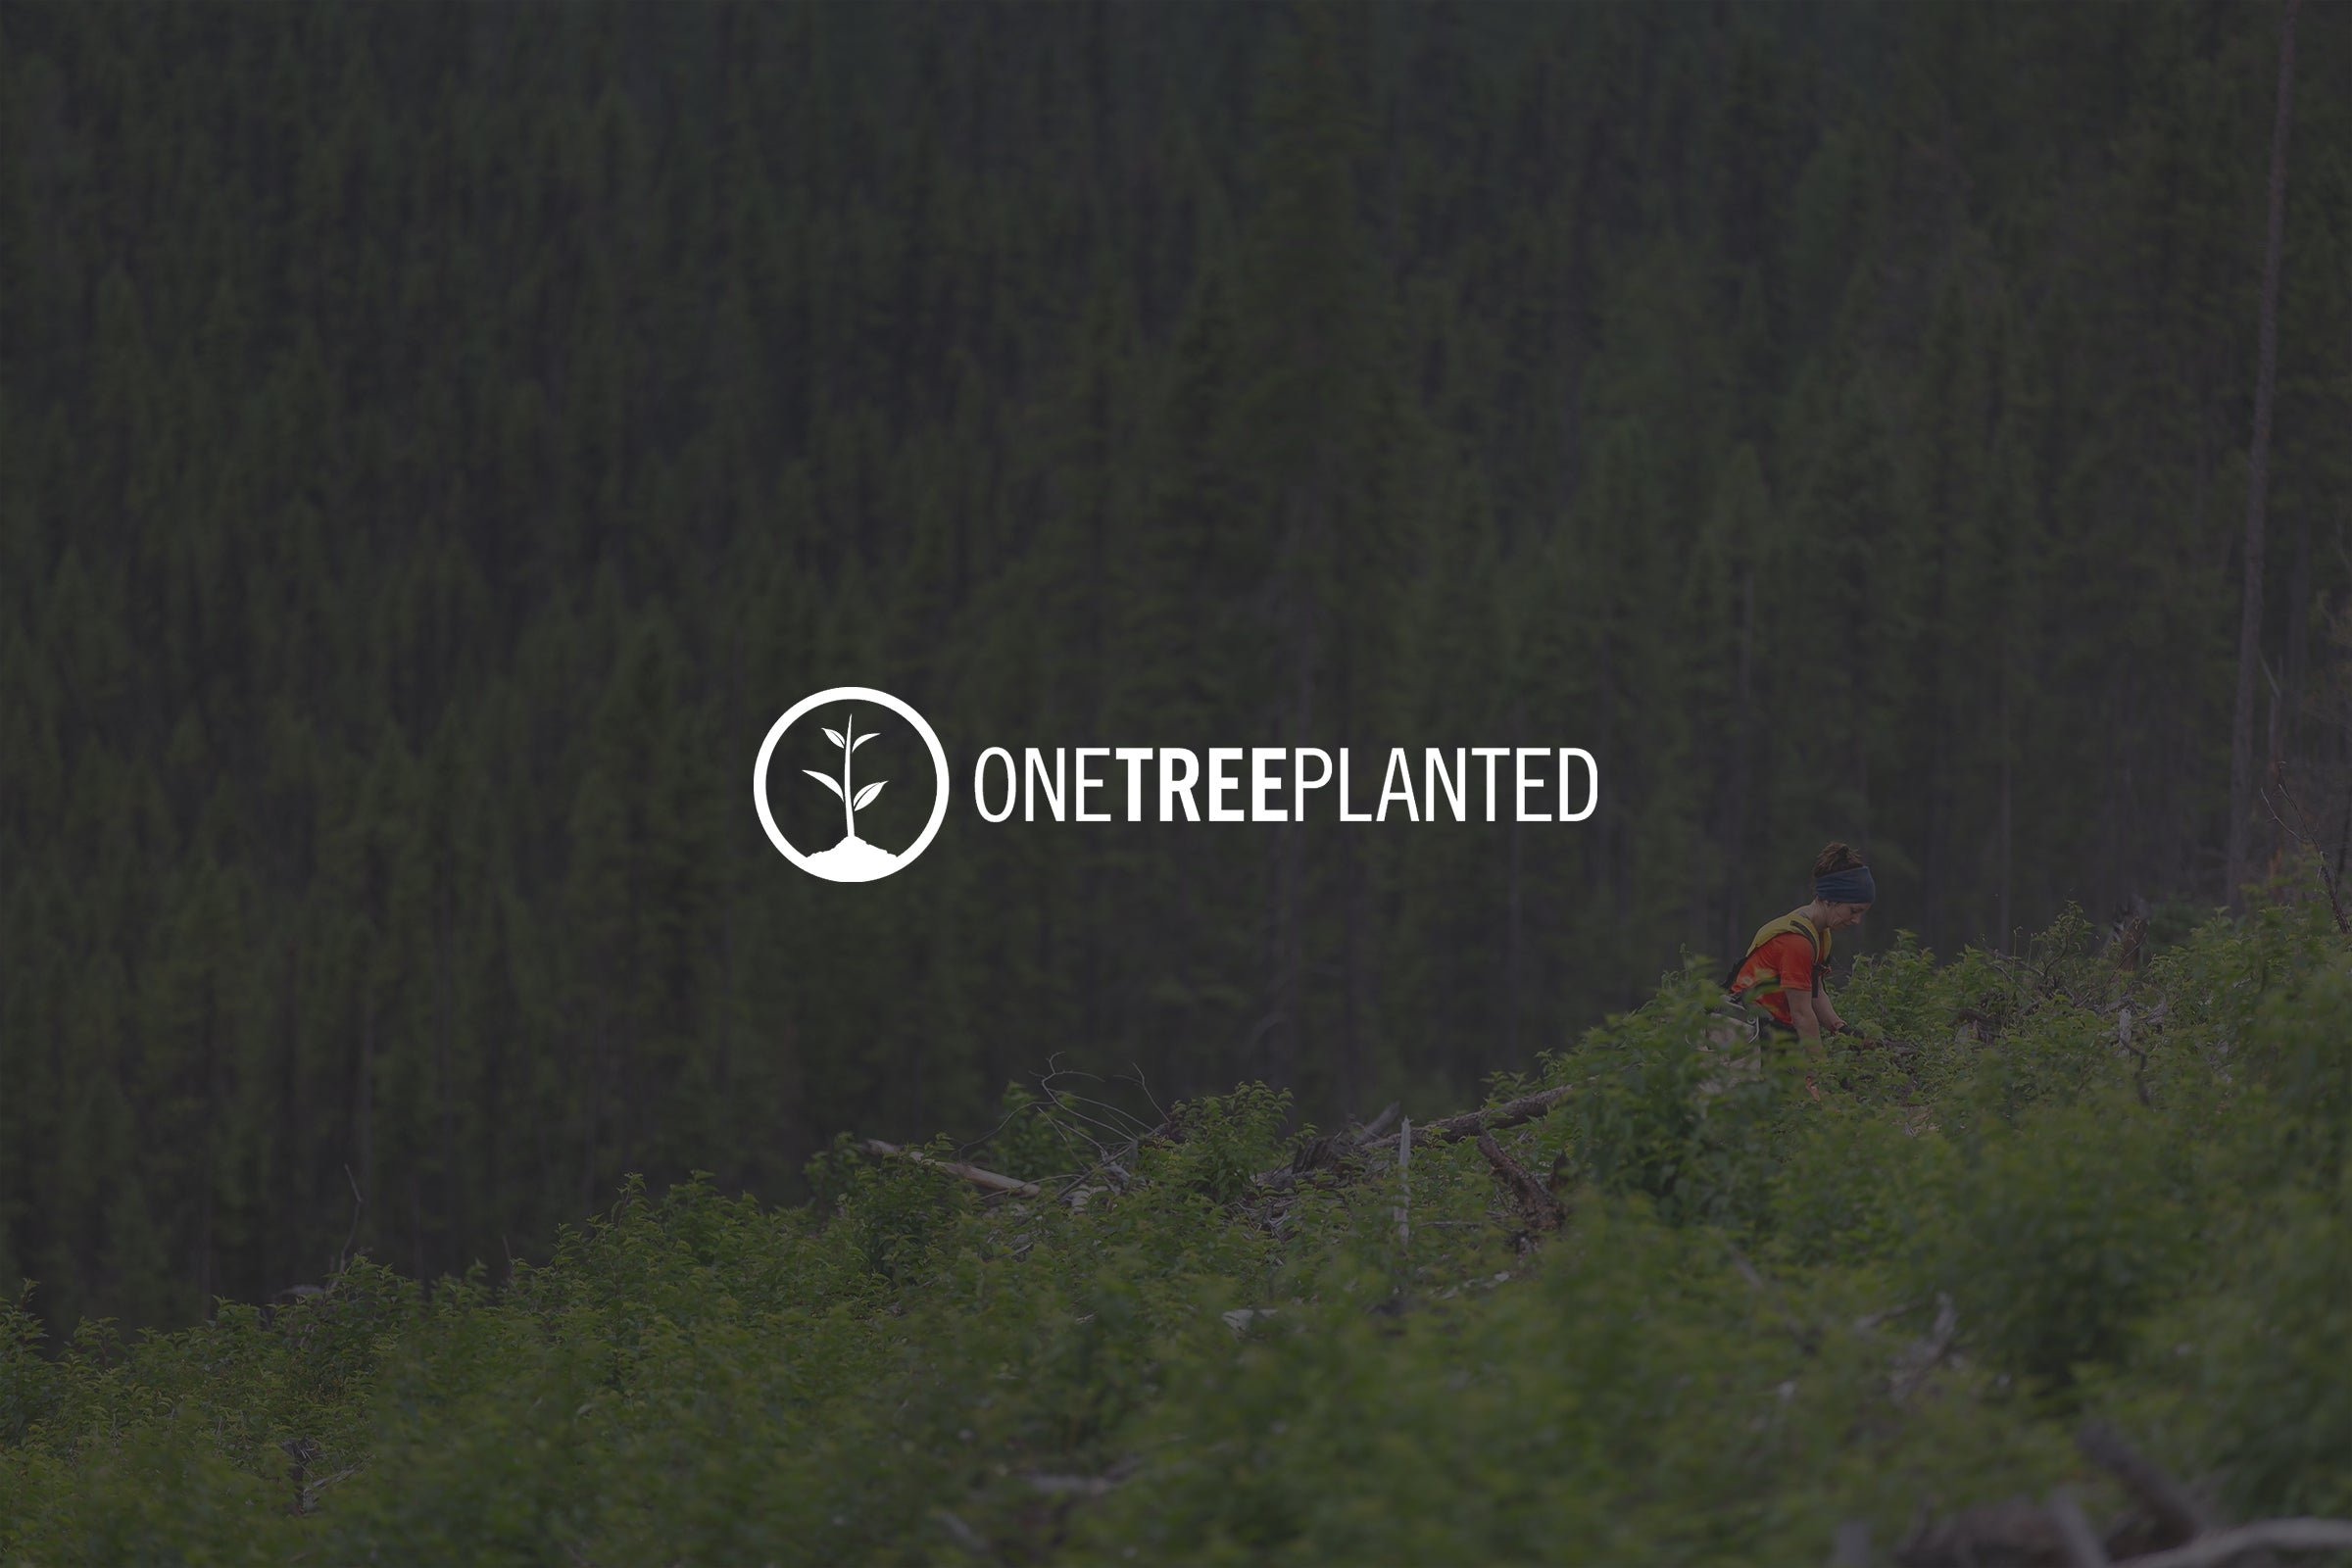 Meet our official charity partner - One Tree Planted